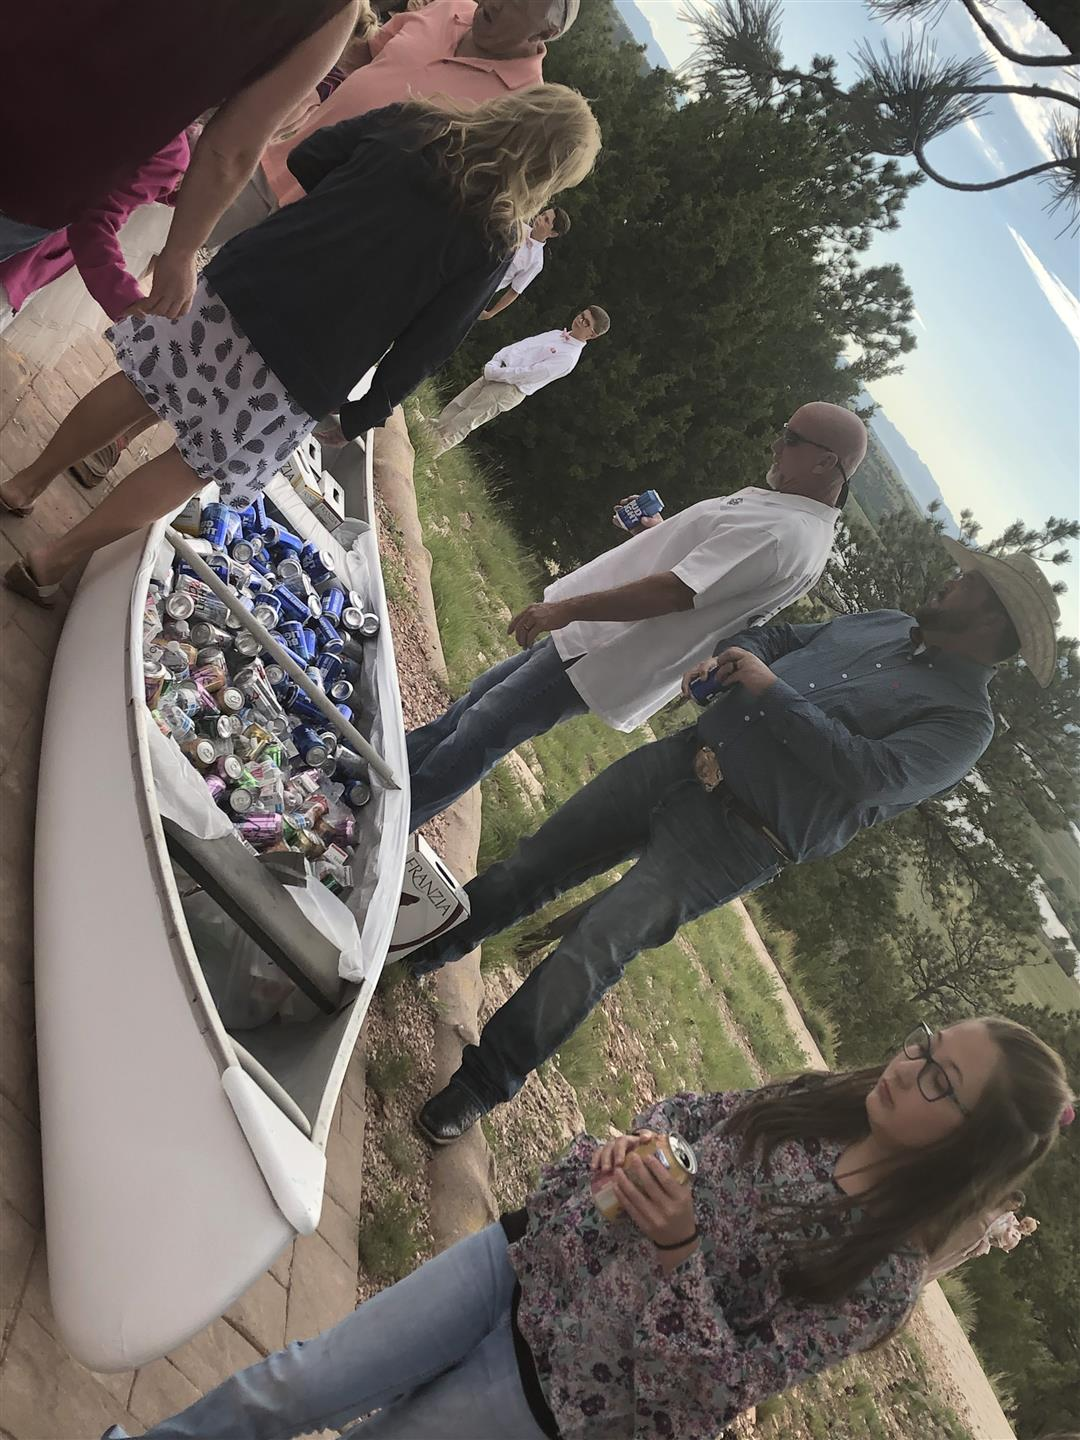 lake side wedding - white canoe filled with canned and bottled beverages for serving